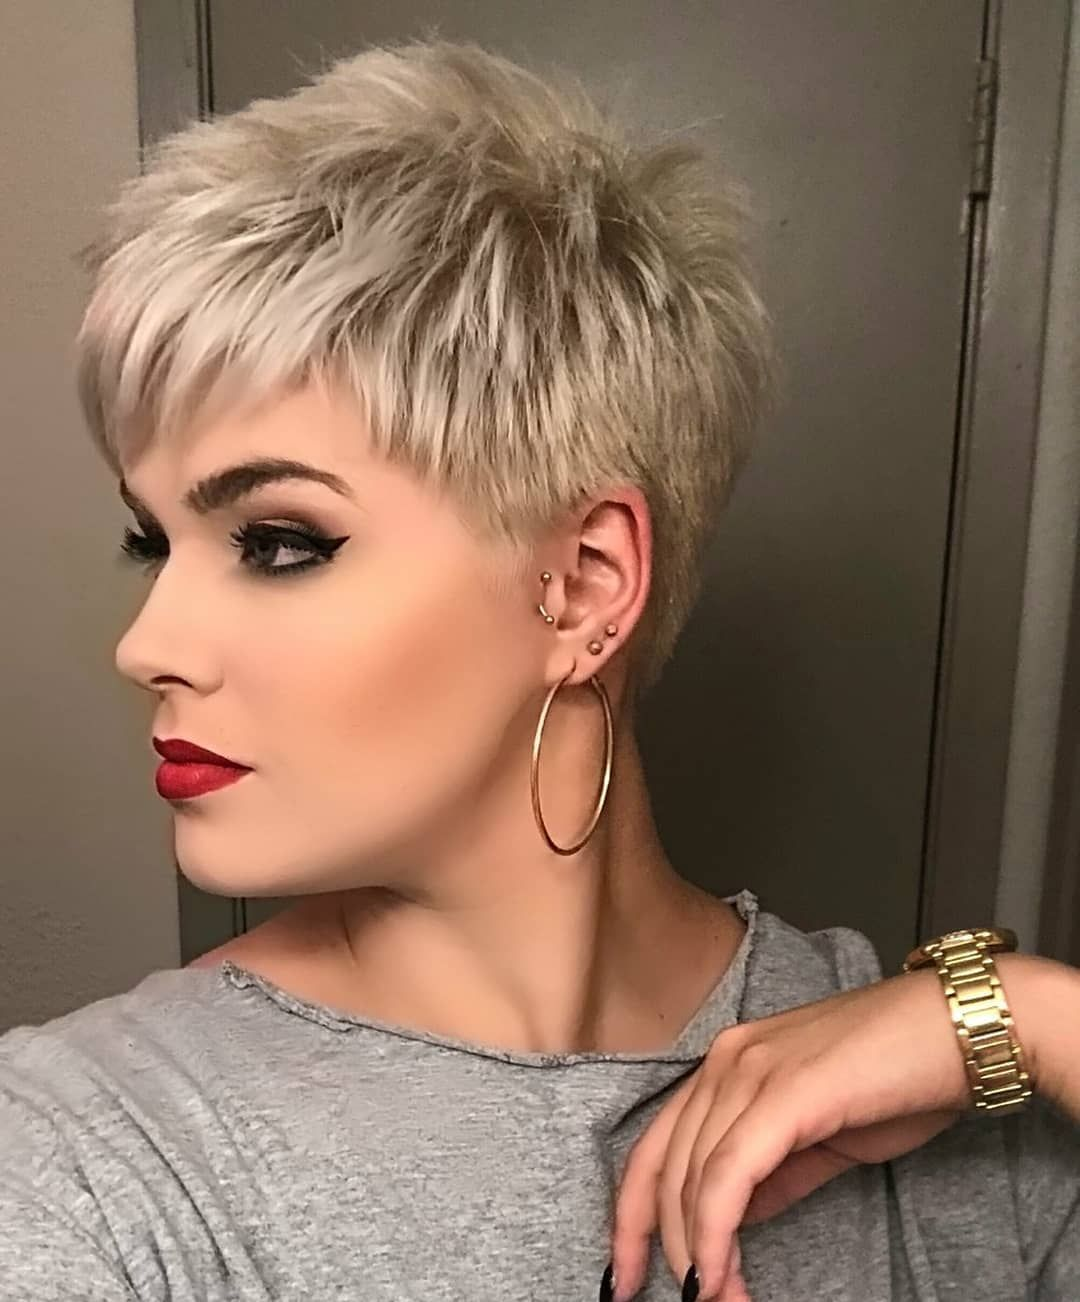 Short blonde pixie cut  Short Hair  Short hair cuts for women Hair cuts Short hair cuts